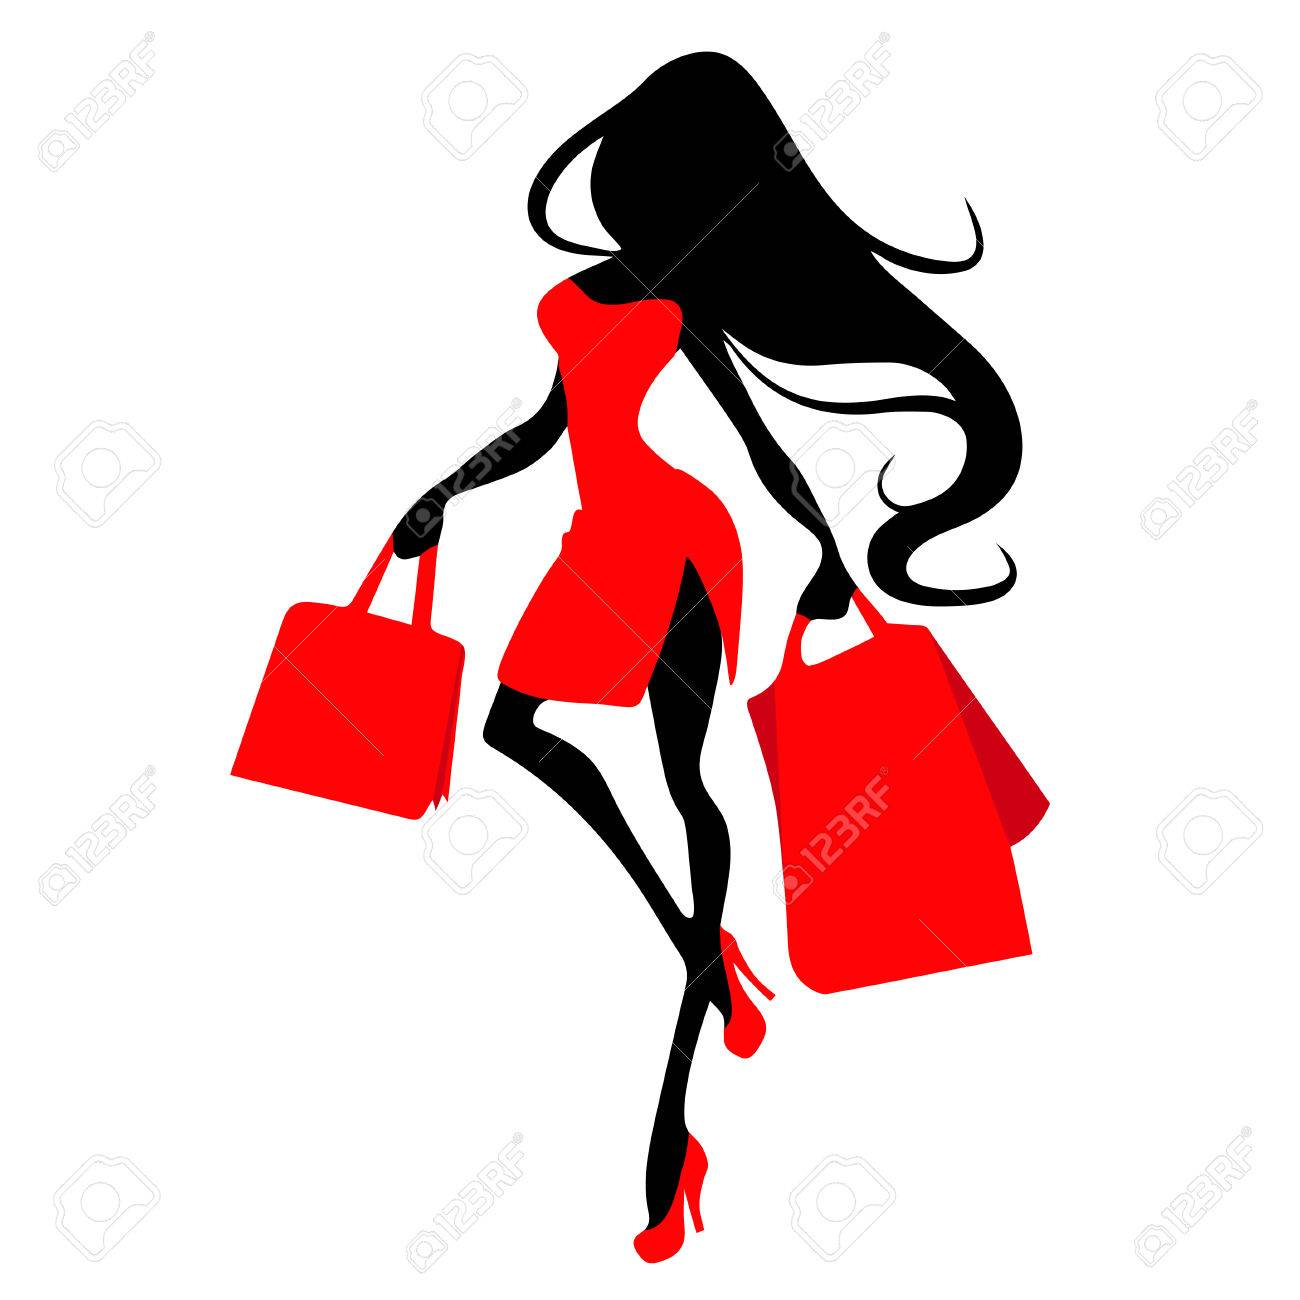 6d7520de9cc Silhouette woman with shopping bag, vector banner template for..